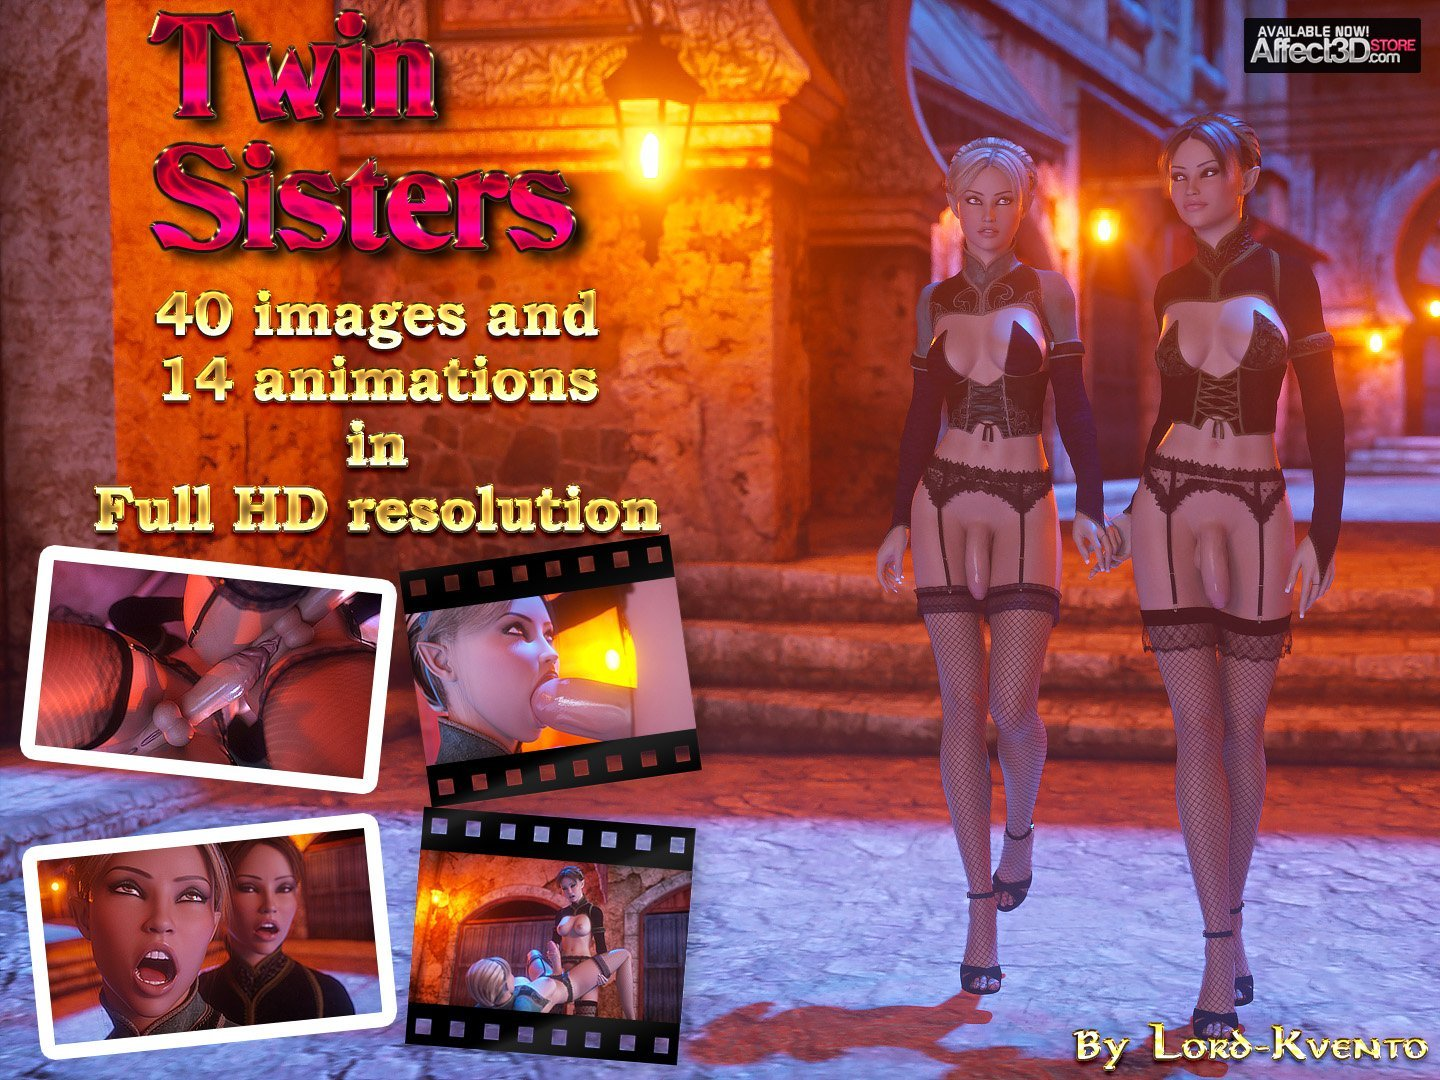 twinsisters_affect3d-main_product_image